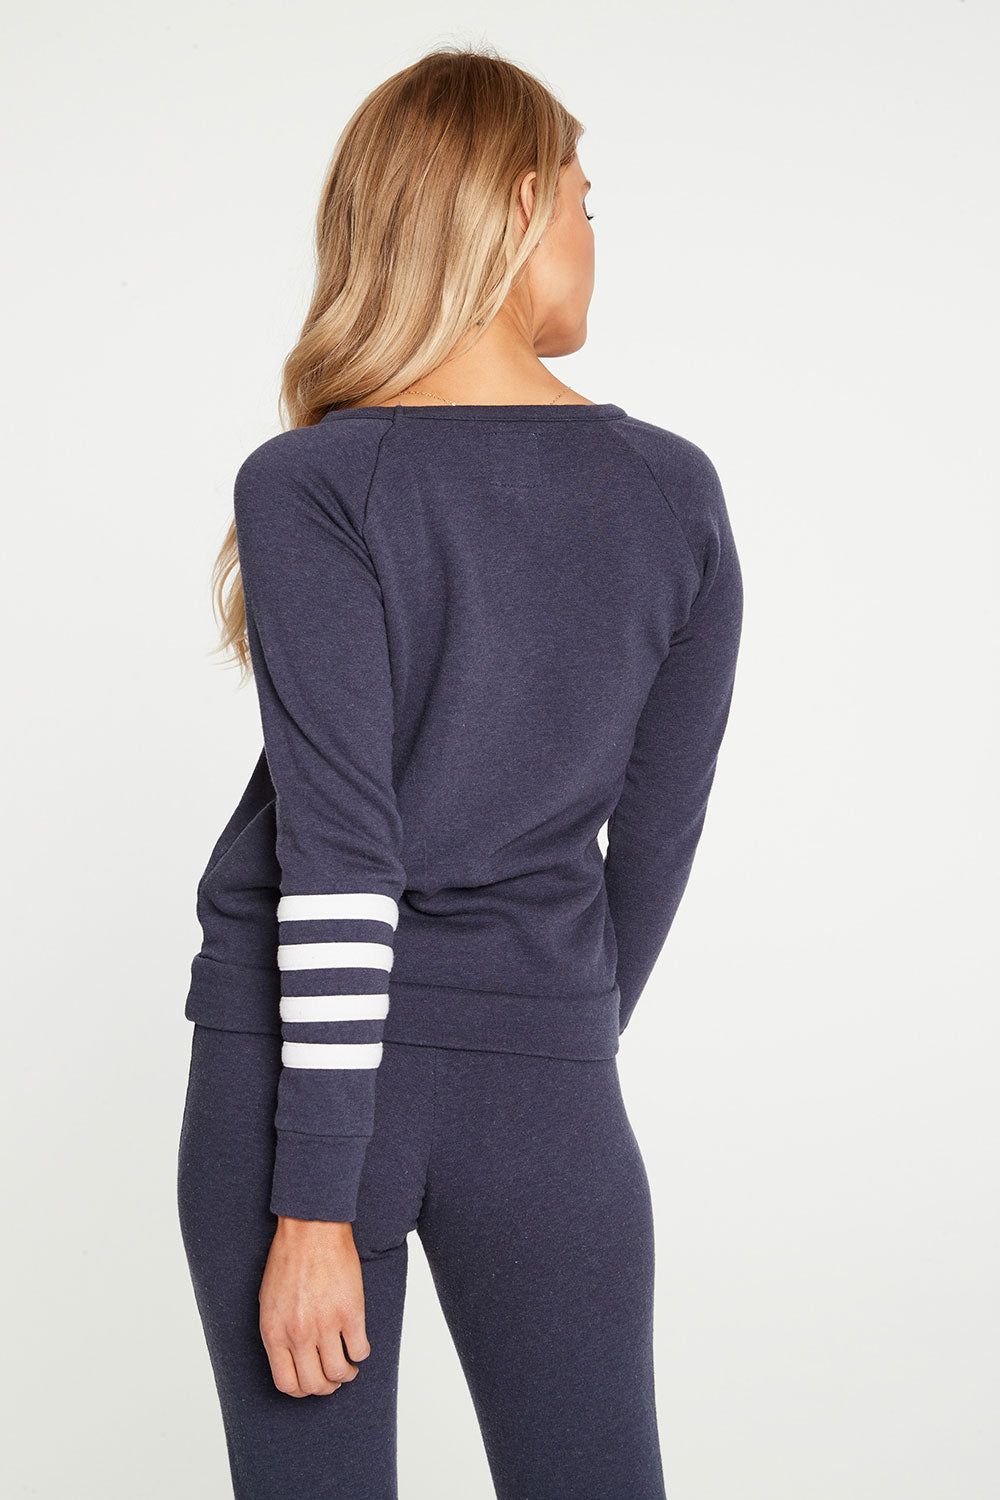 Cashmere Fleece Long Sleeve Raglan Pullover With Strappings WOMENS chaserbrand4.myshopify.com